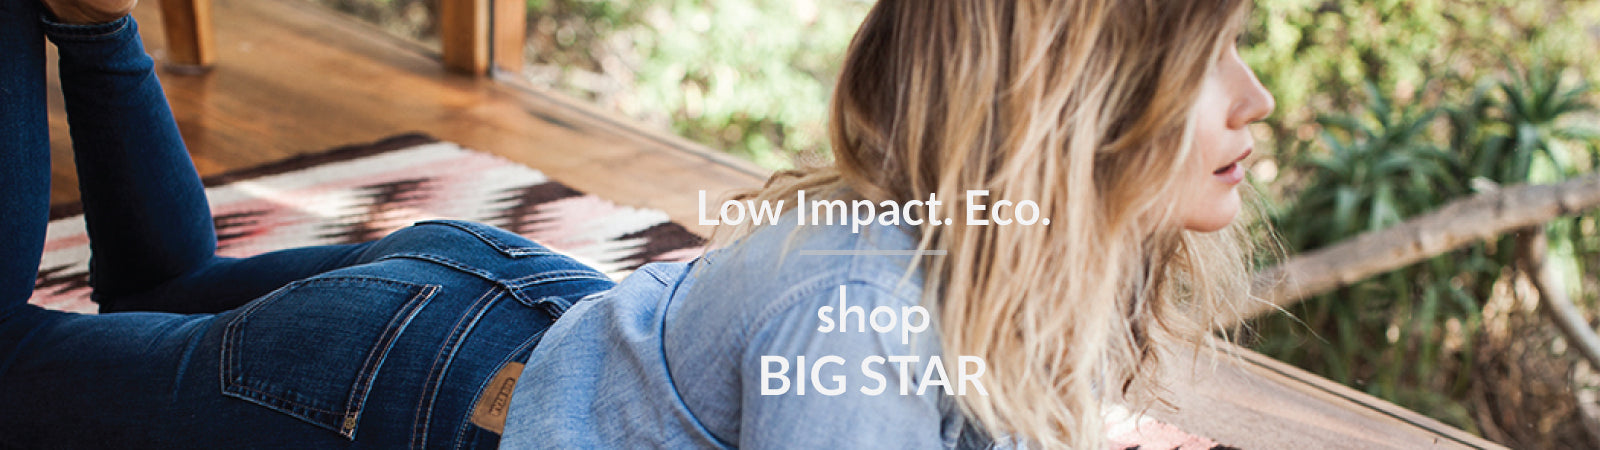 Shop men's and women's eco-friendly denim from Big Star.